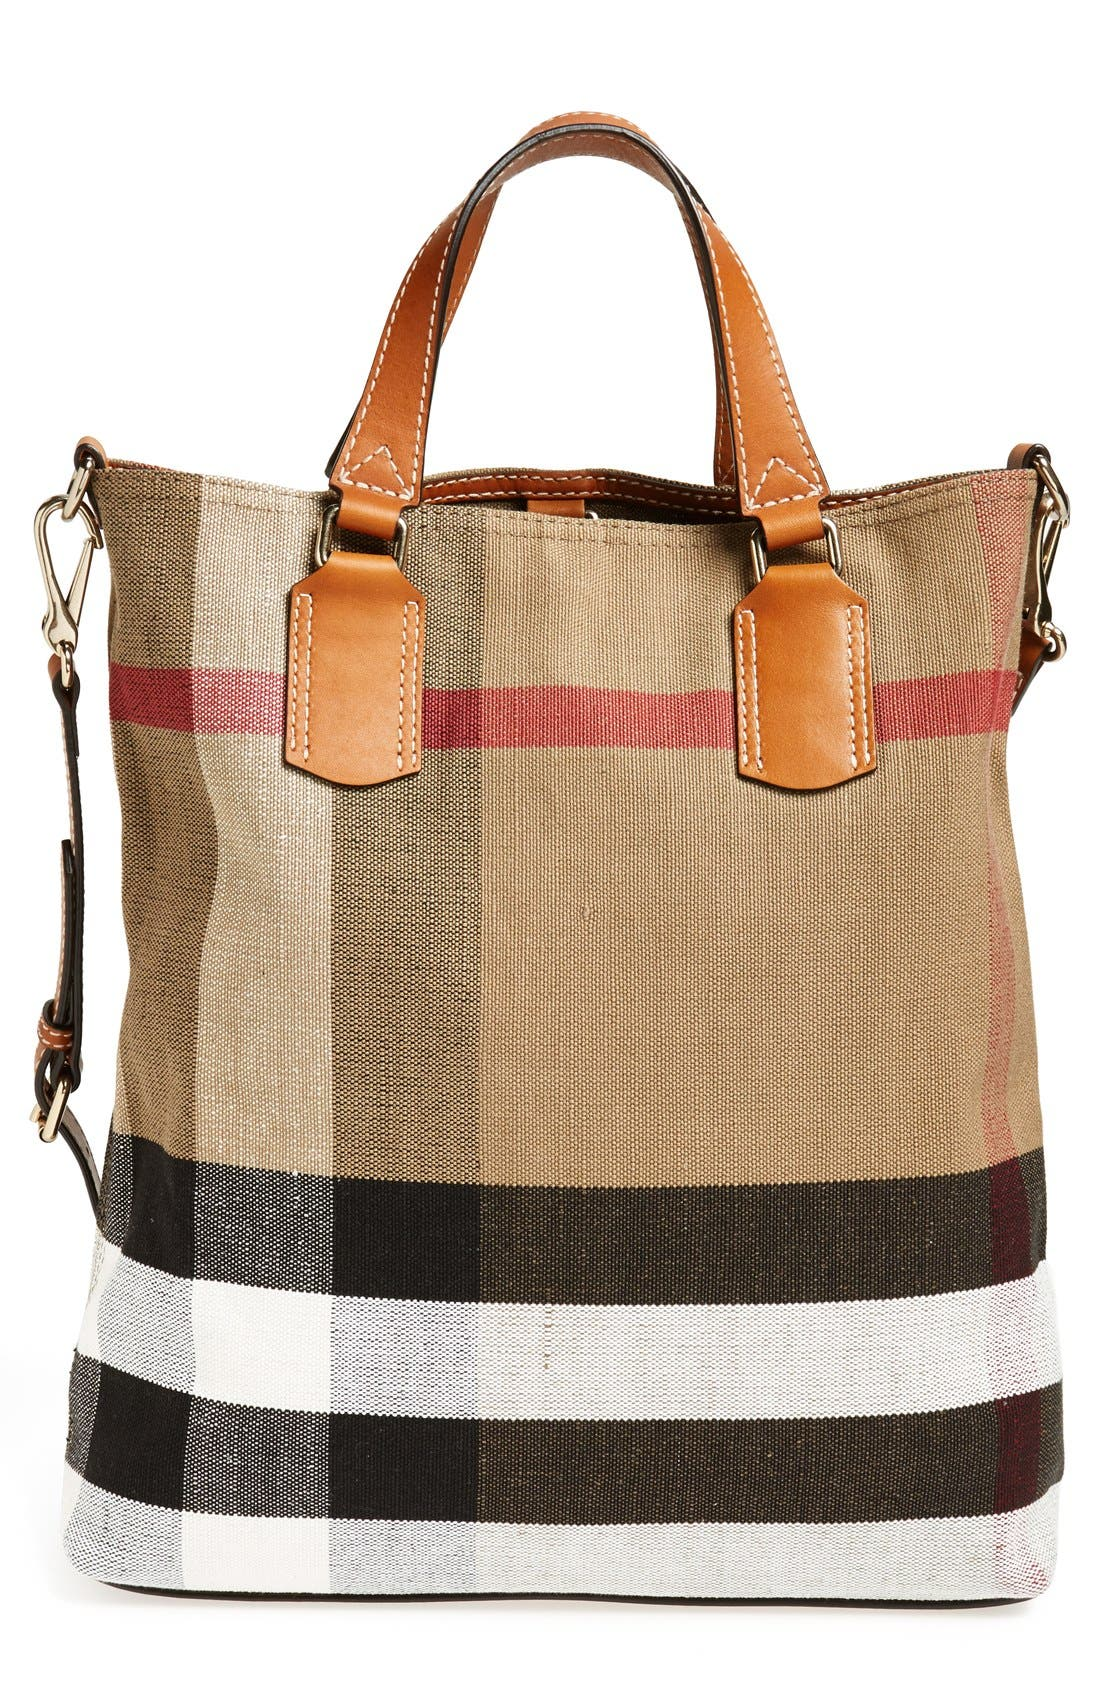 Main Image - Burberry Brit 'Medium Tottenham' Check Print Bucket Tote